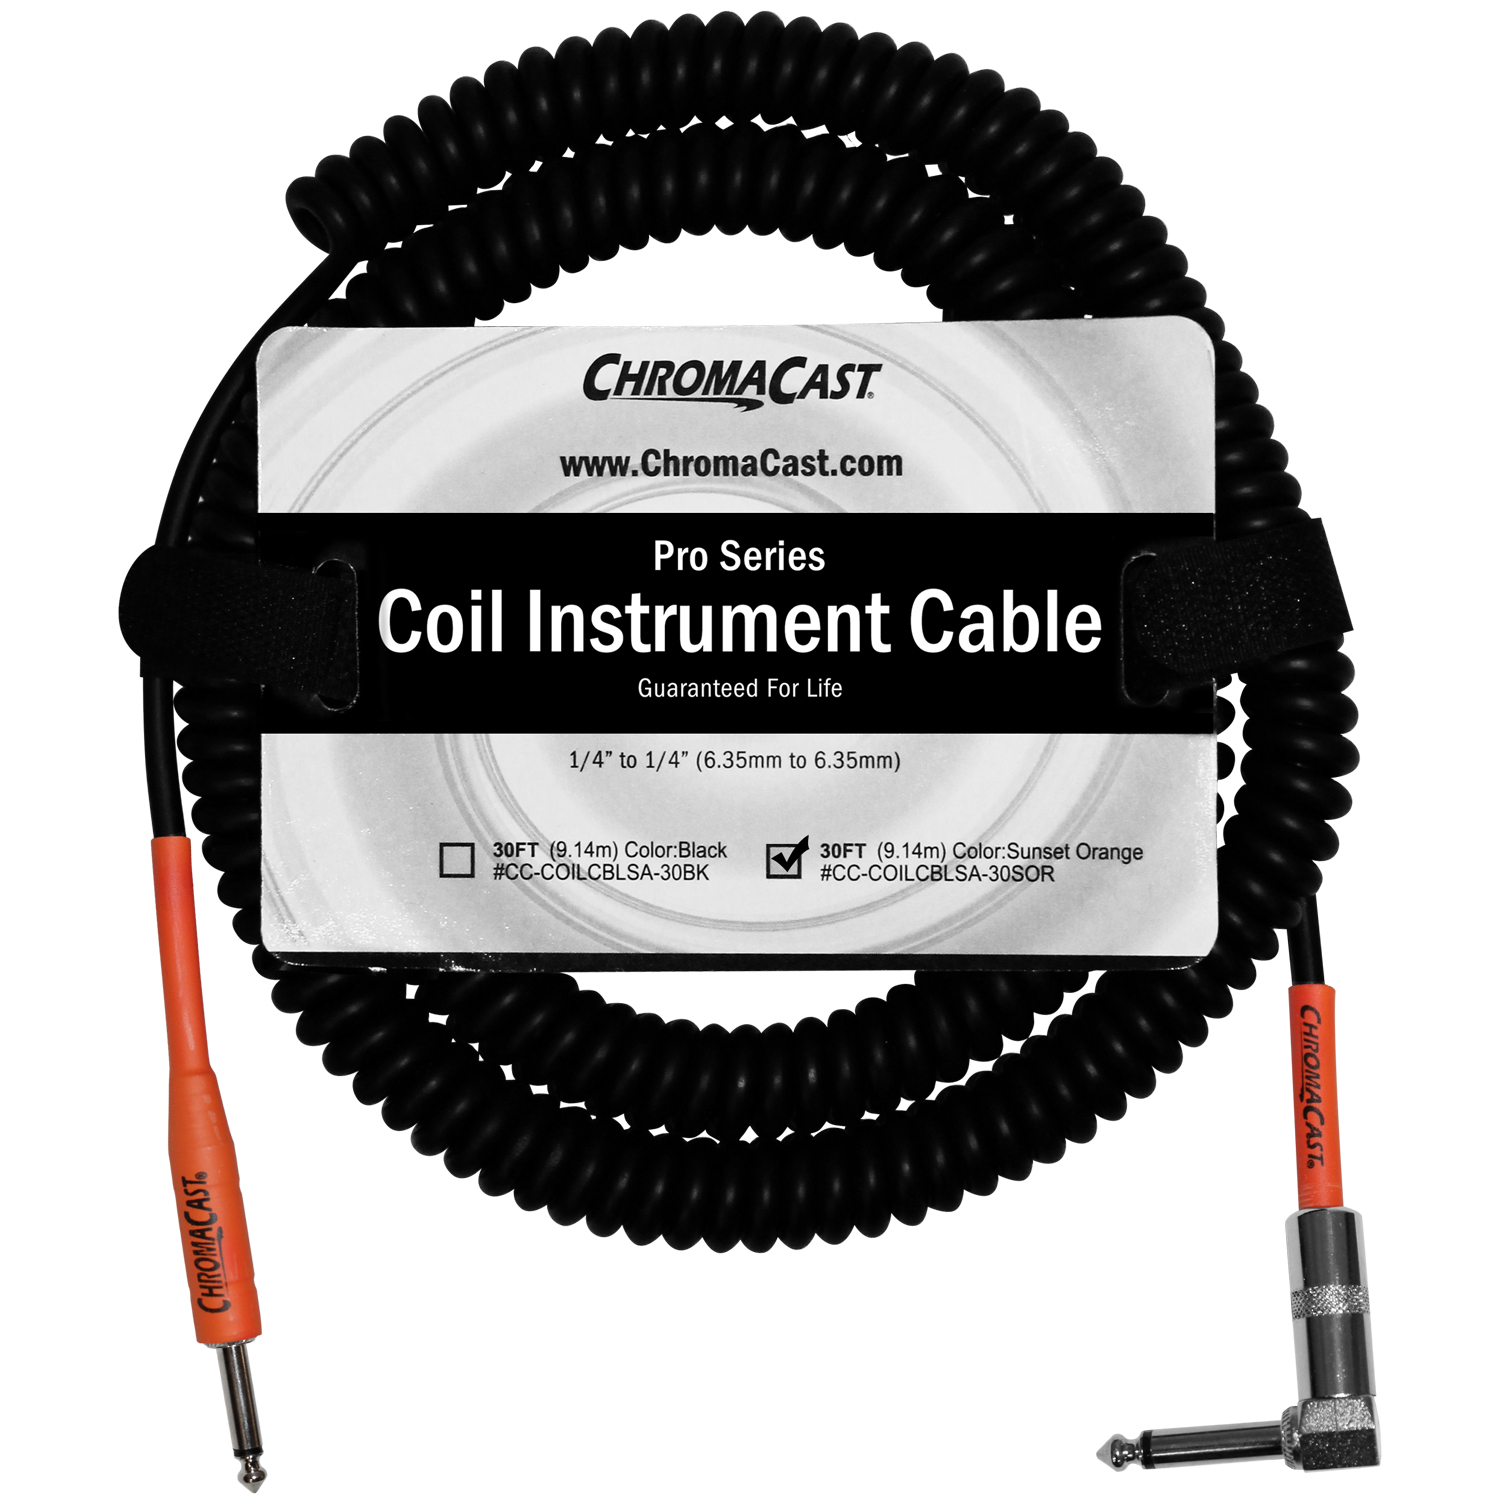 Pro Series Coil Instrument Cable